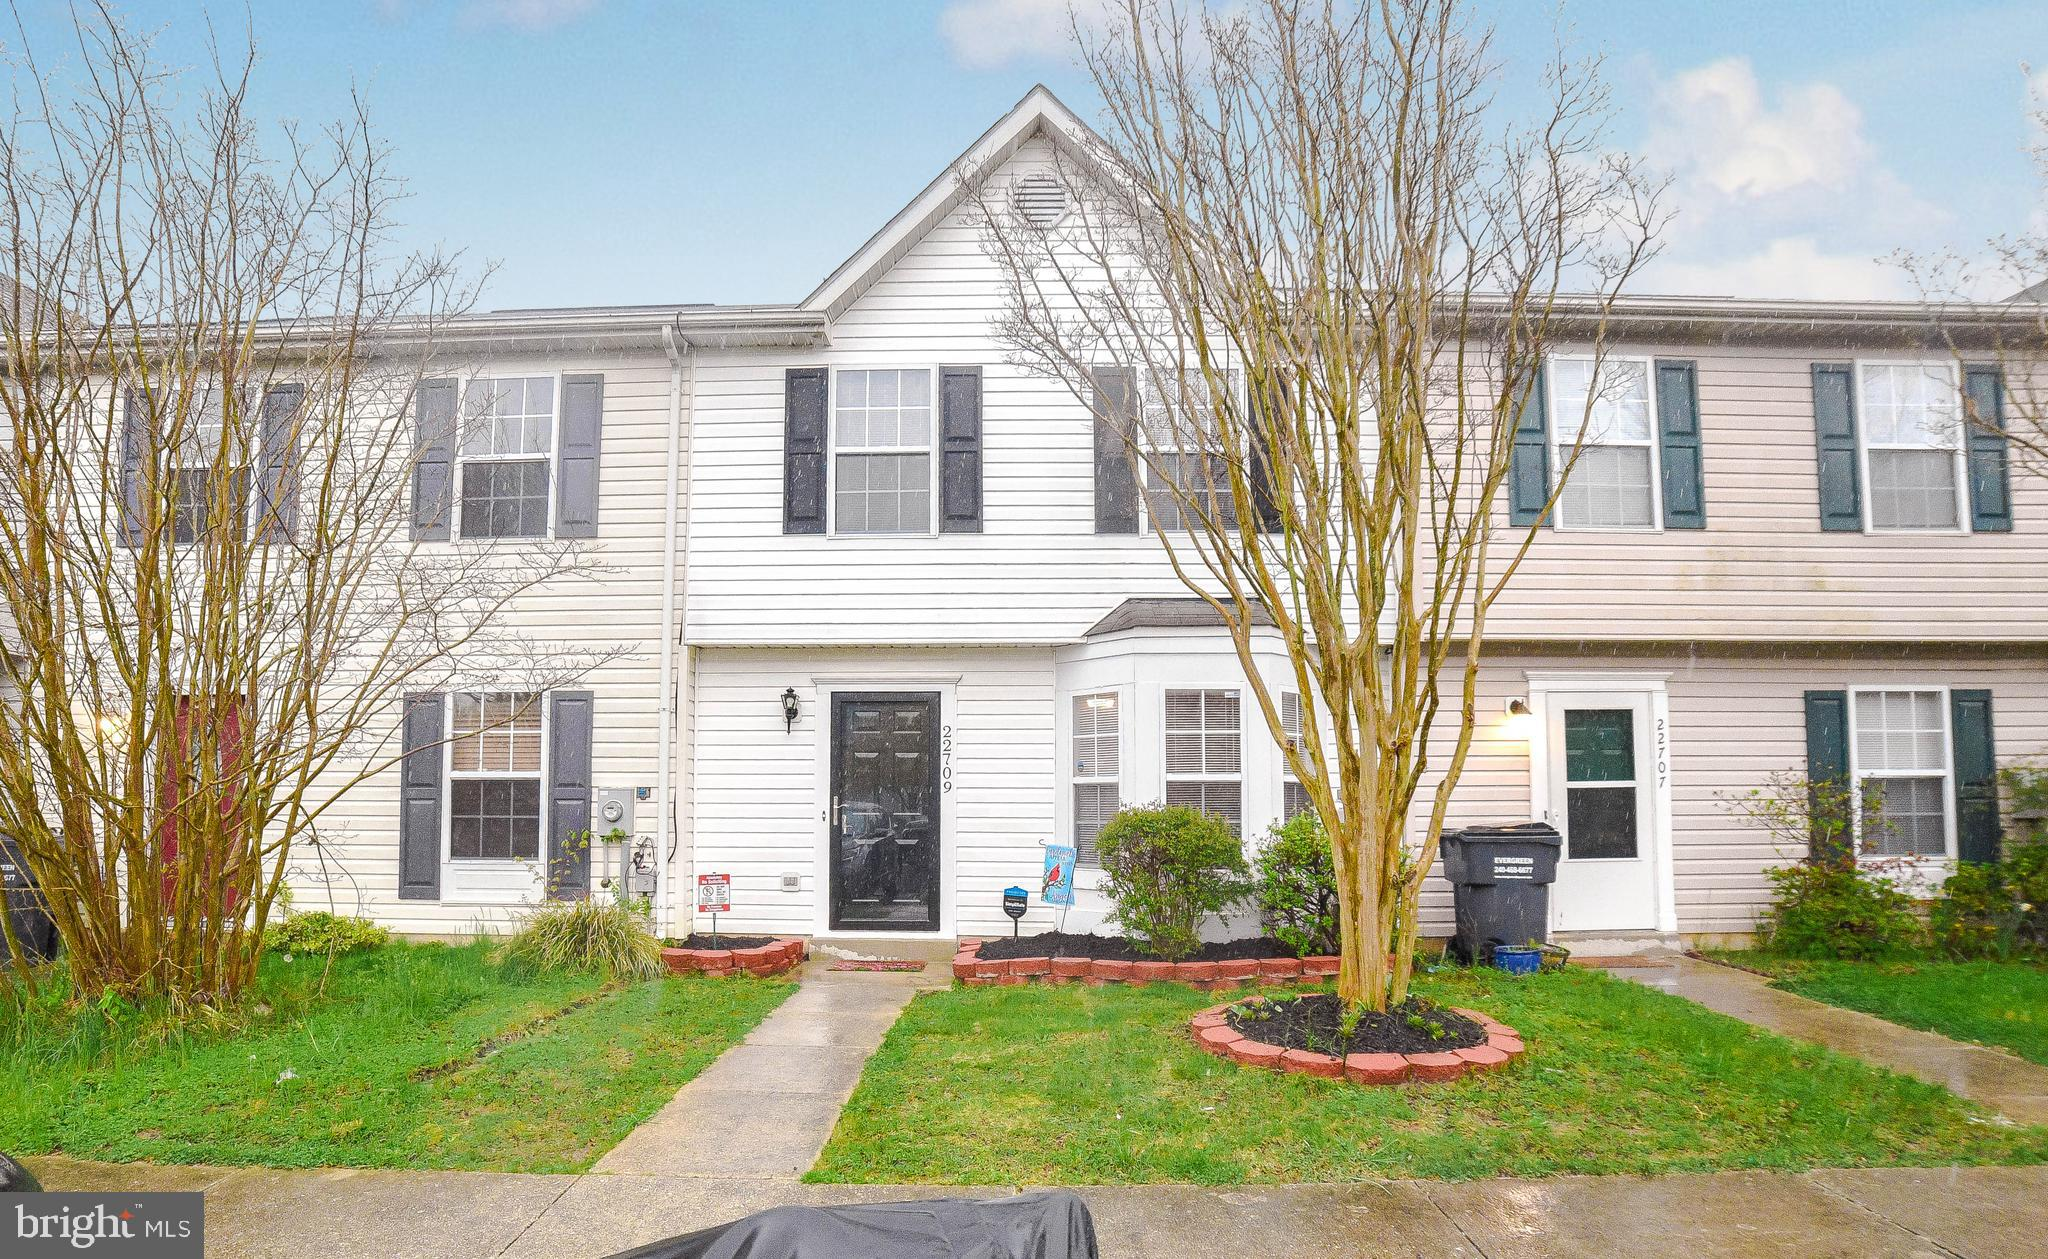 Come home to this adorable 2 bd., 2 1/2 bath townhome in the center of everything! Just minutes from